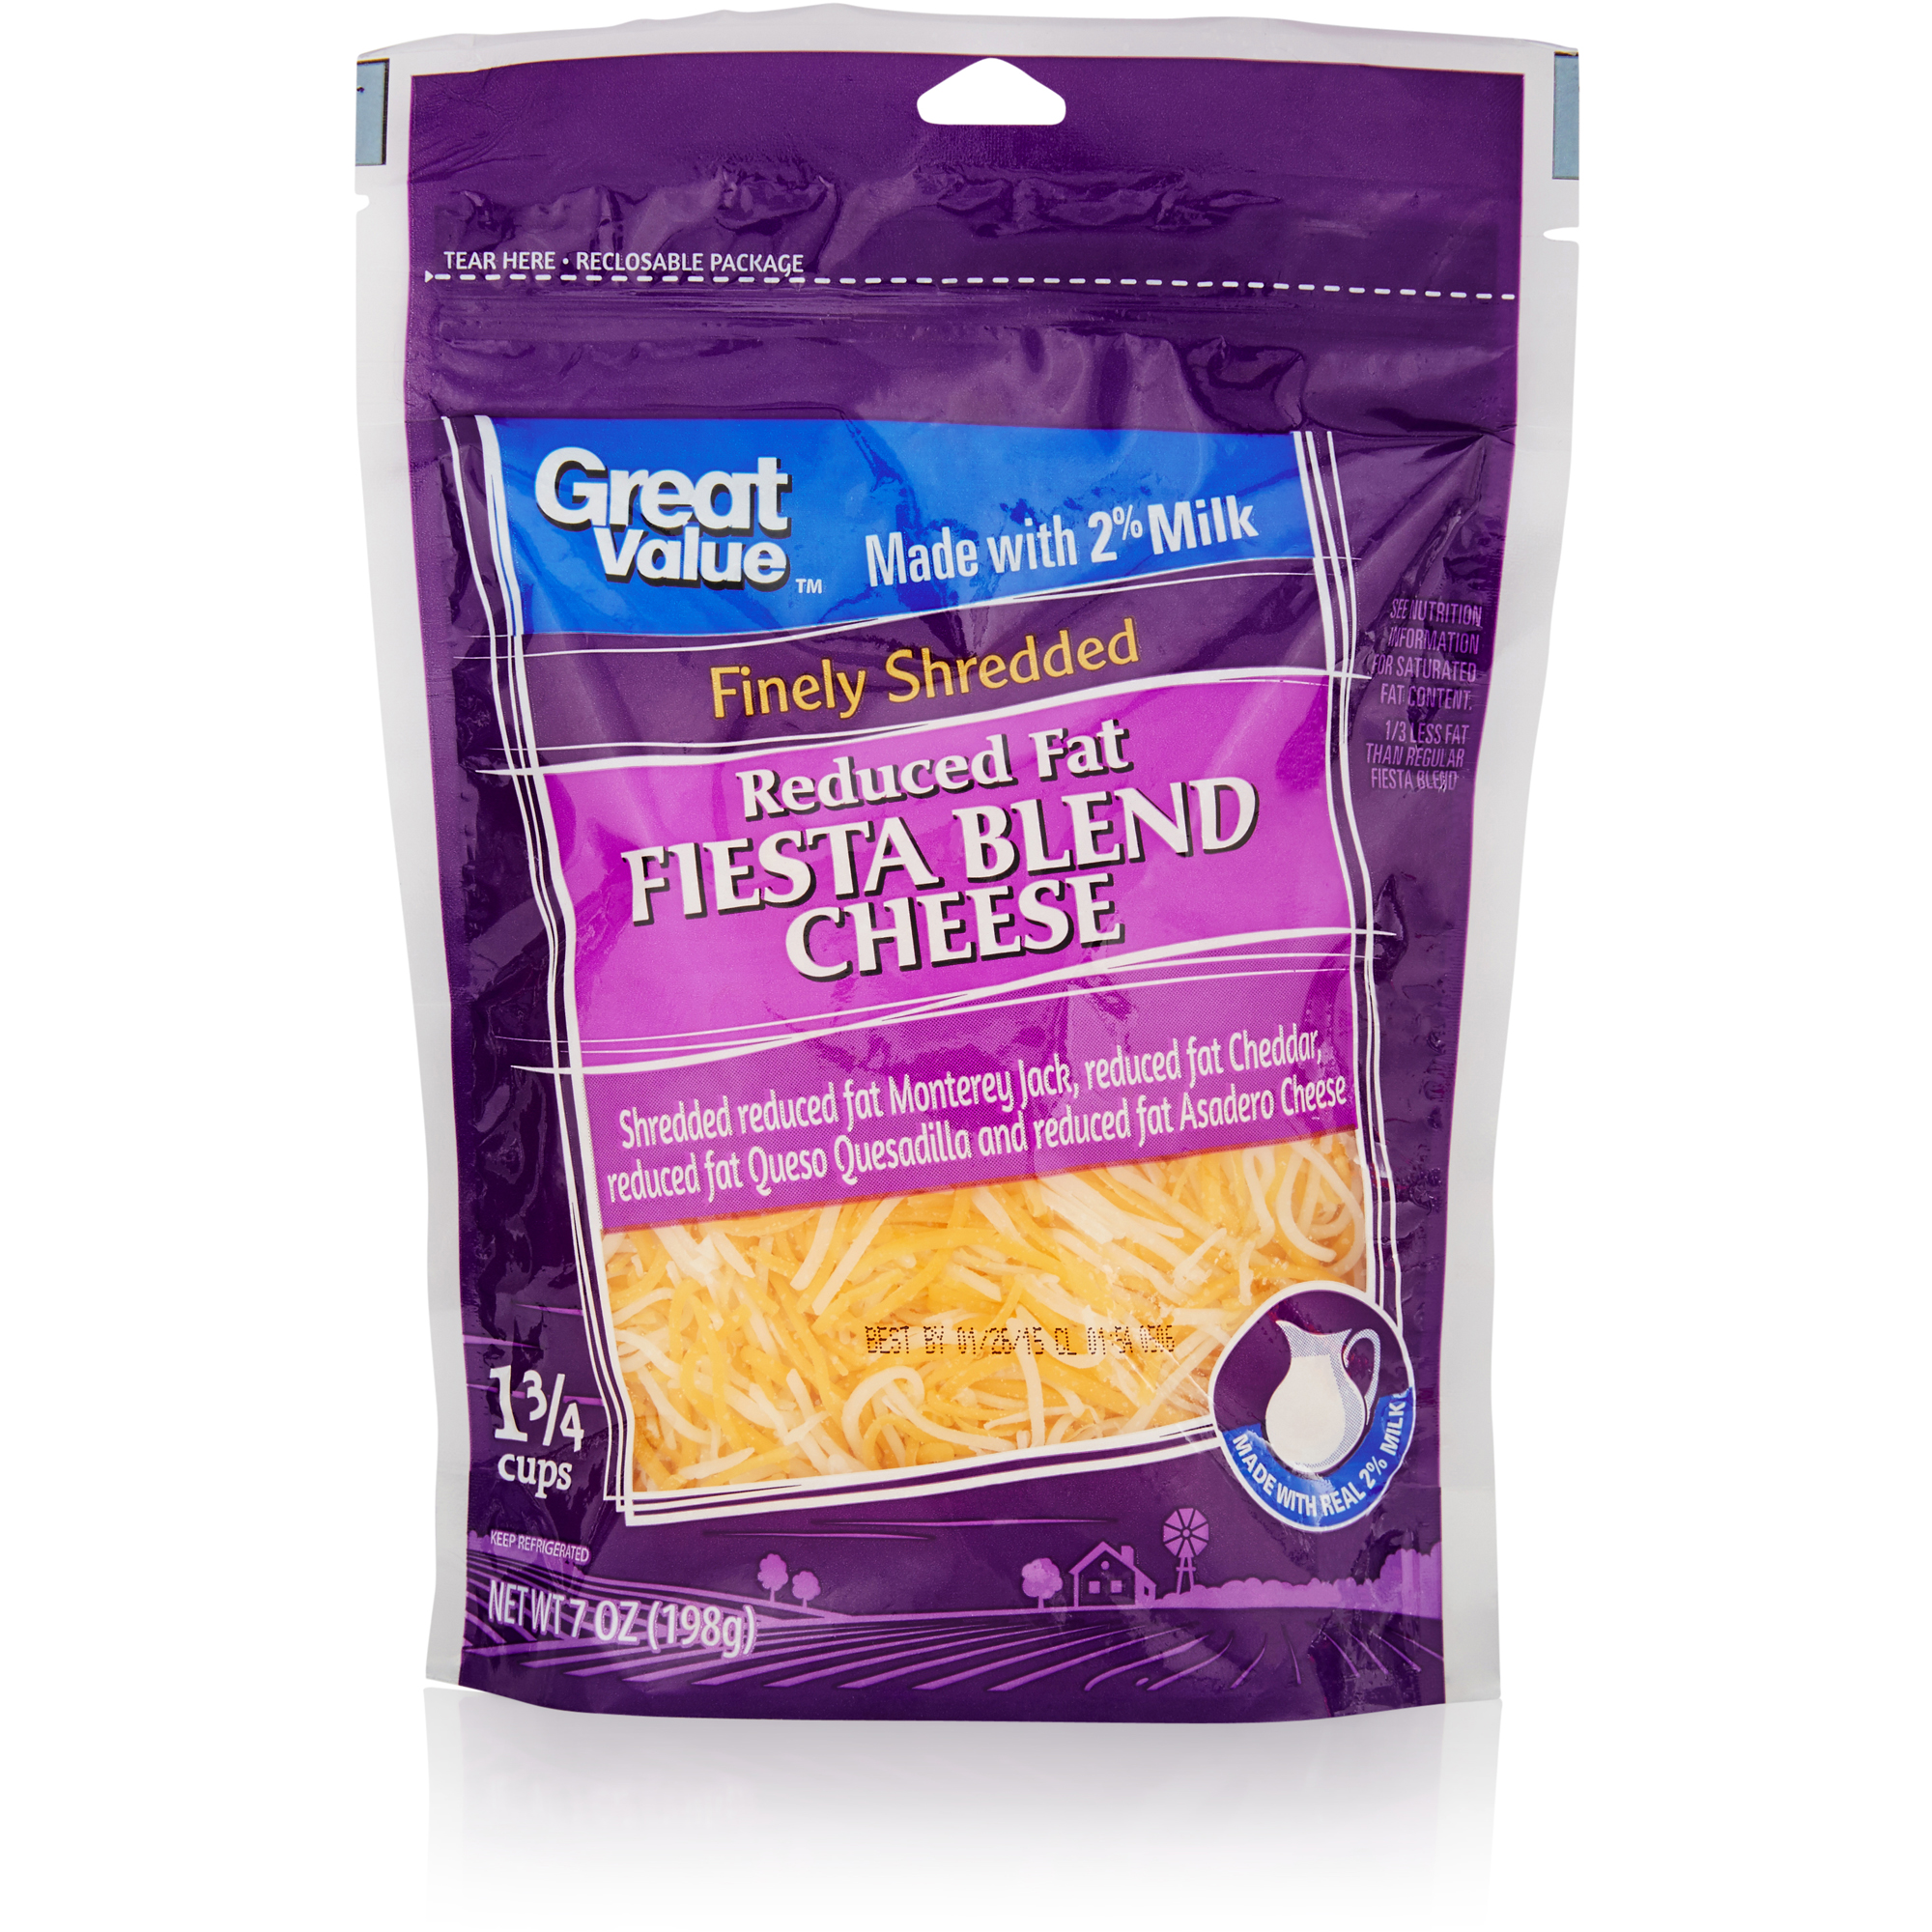 Great Value Finely Shredded Fiesta Blend Cheese, 7 oz